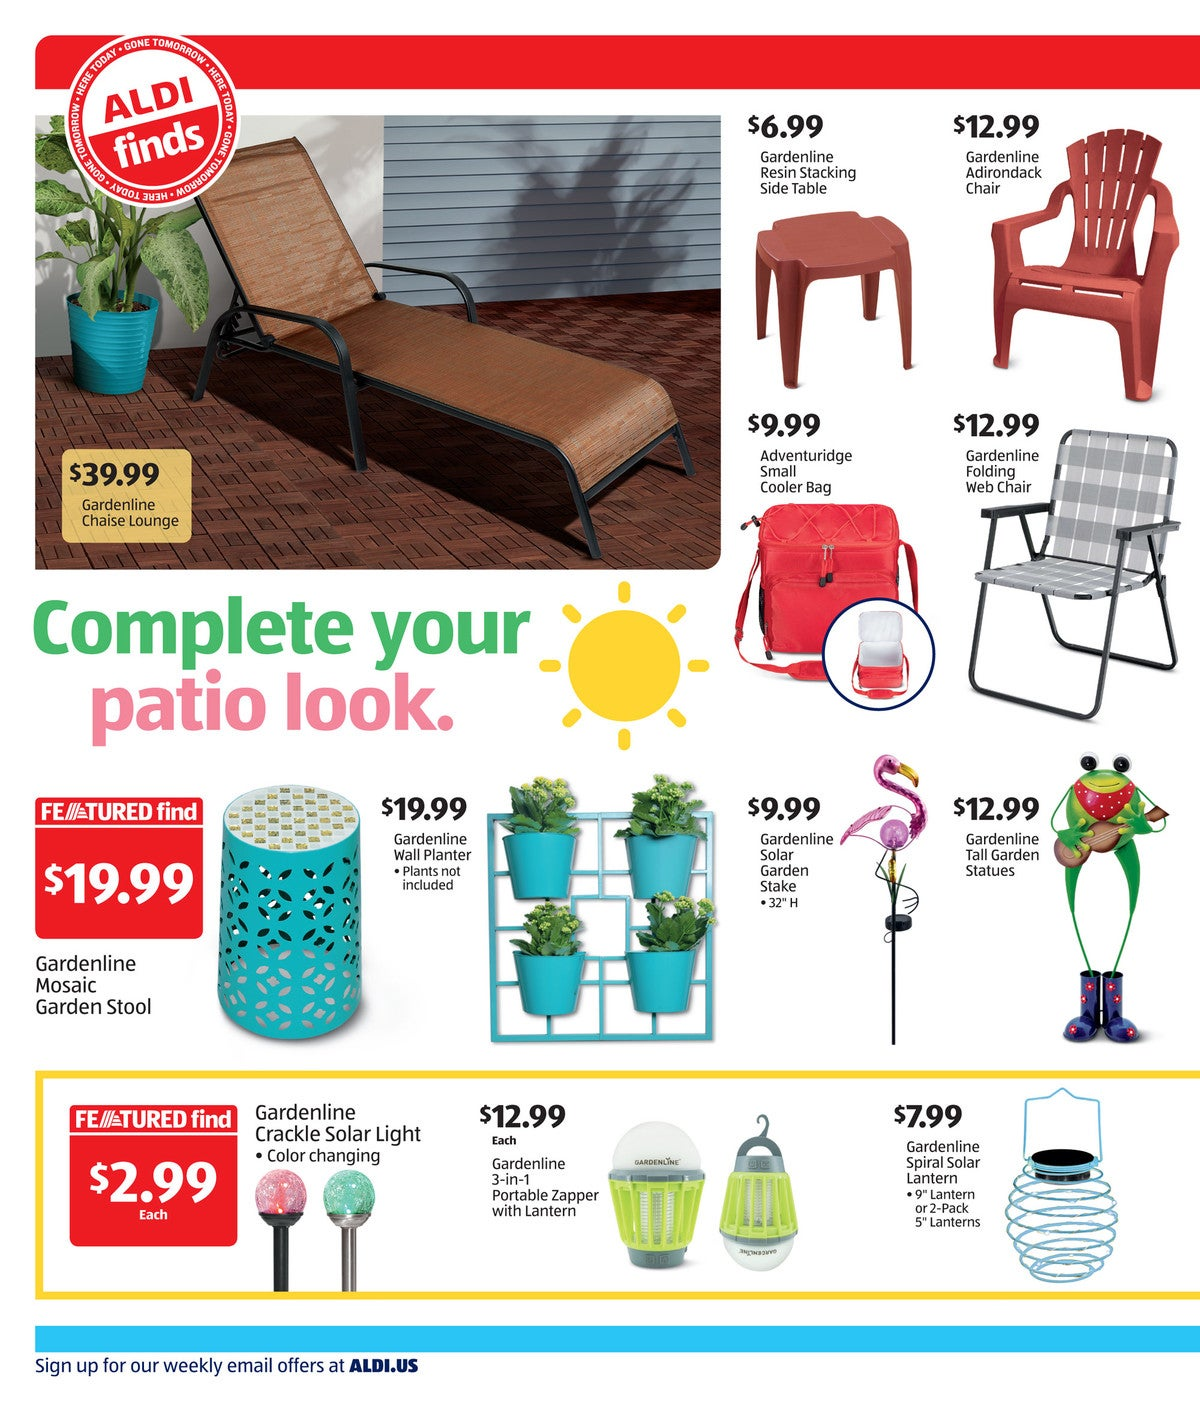 aldi ad preview july 7-14 page 2 of 4